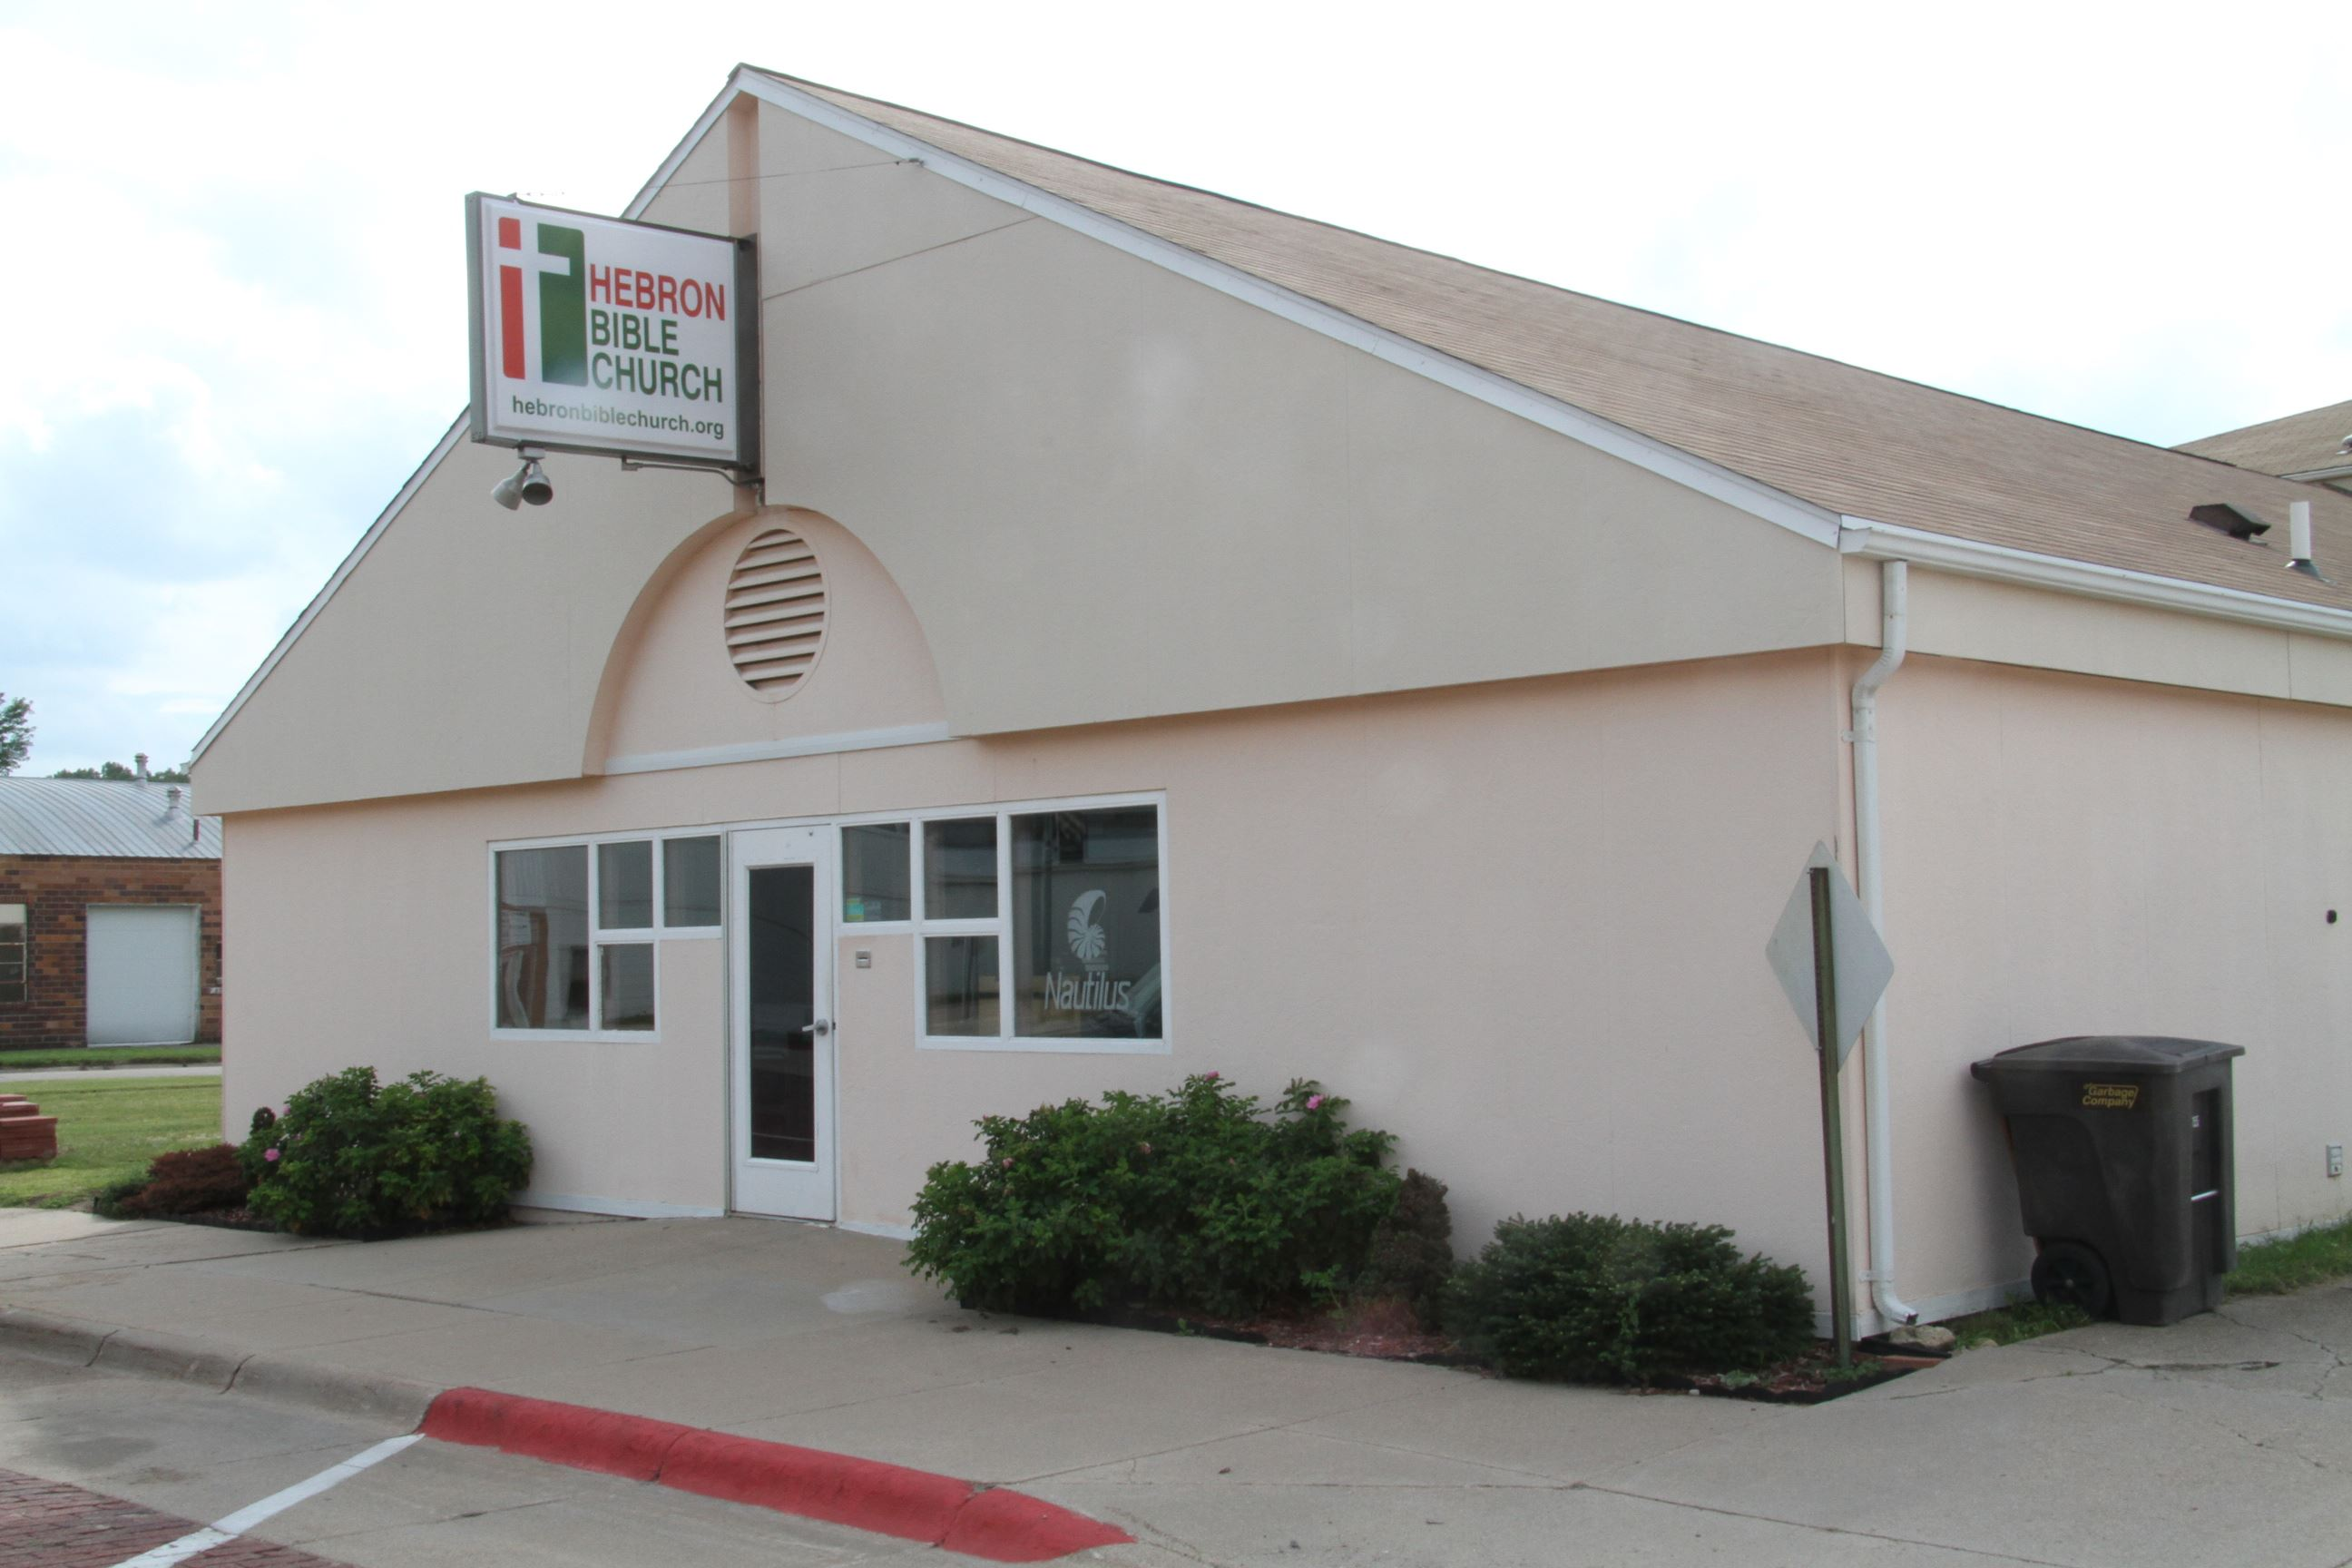 Hebron Bible Church building